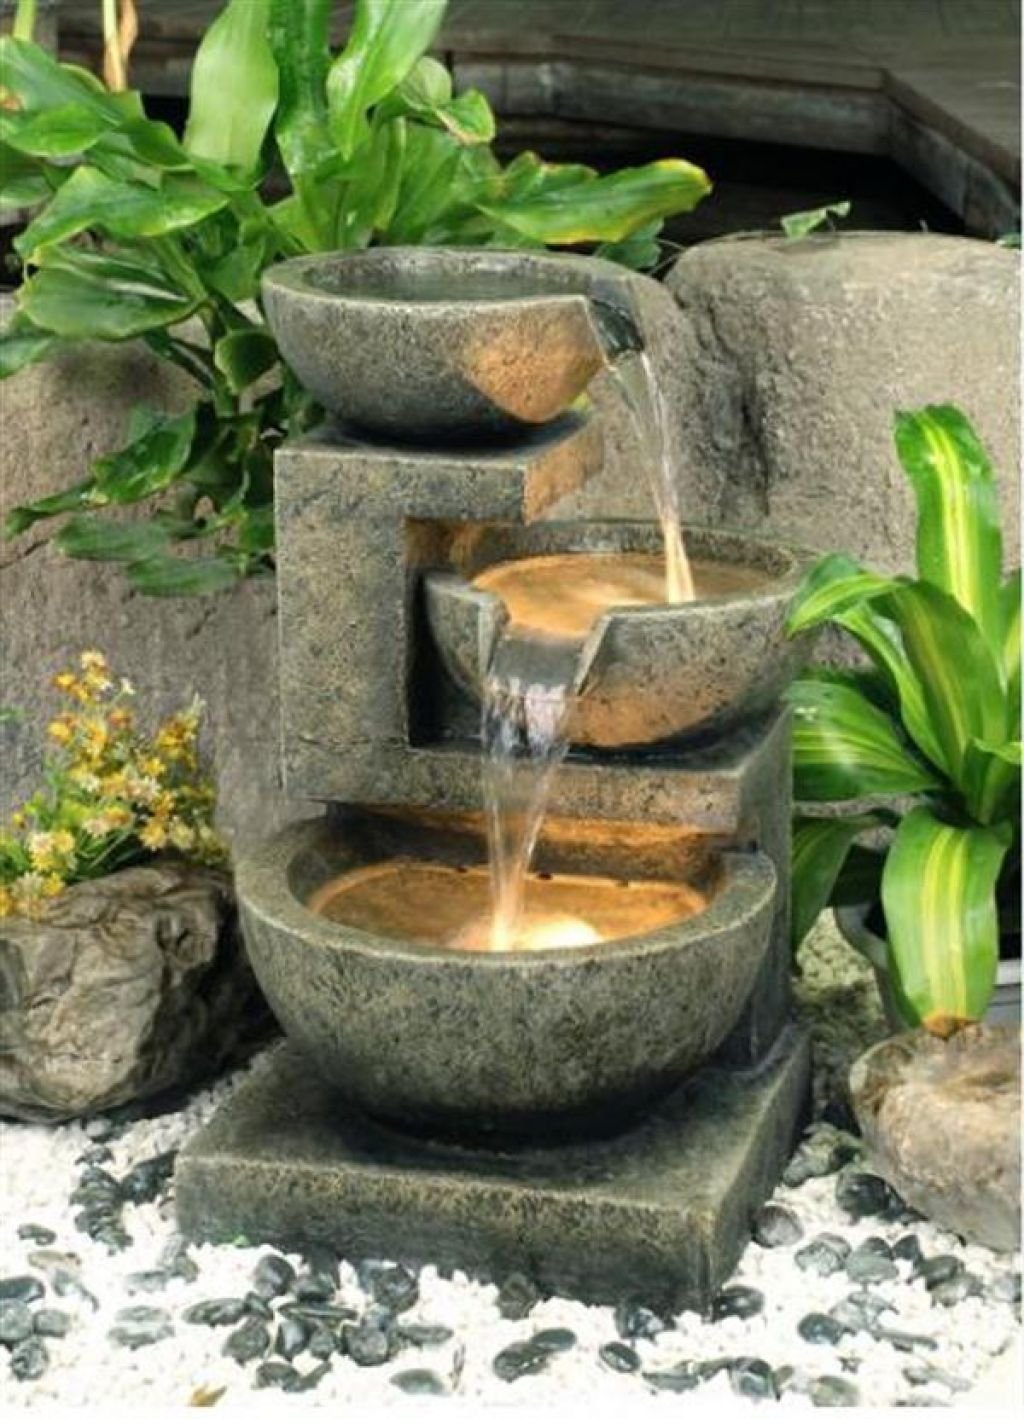 House easy diy project homemade water fountains for for Boule ceramique decoration jardin terrasse maison